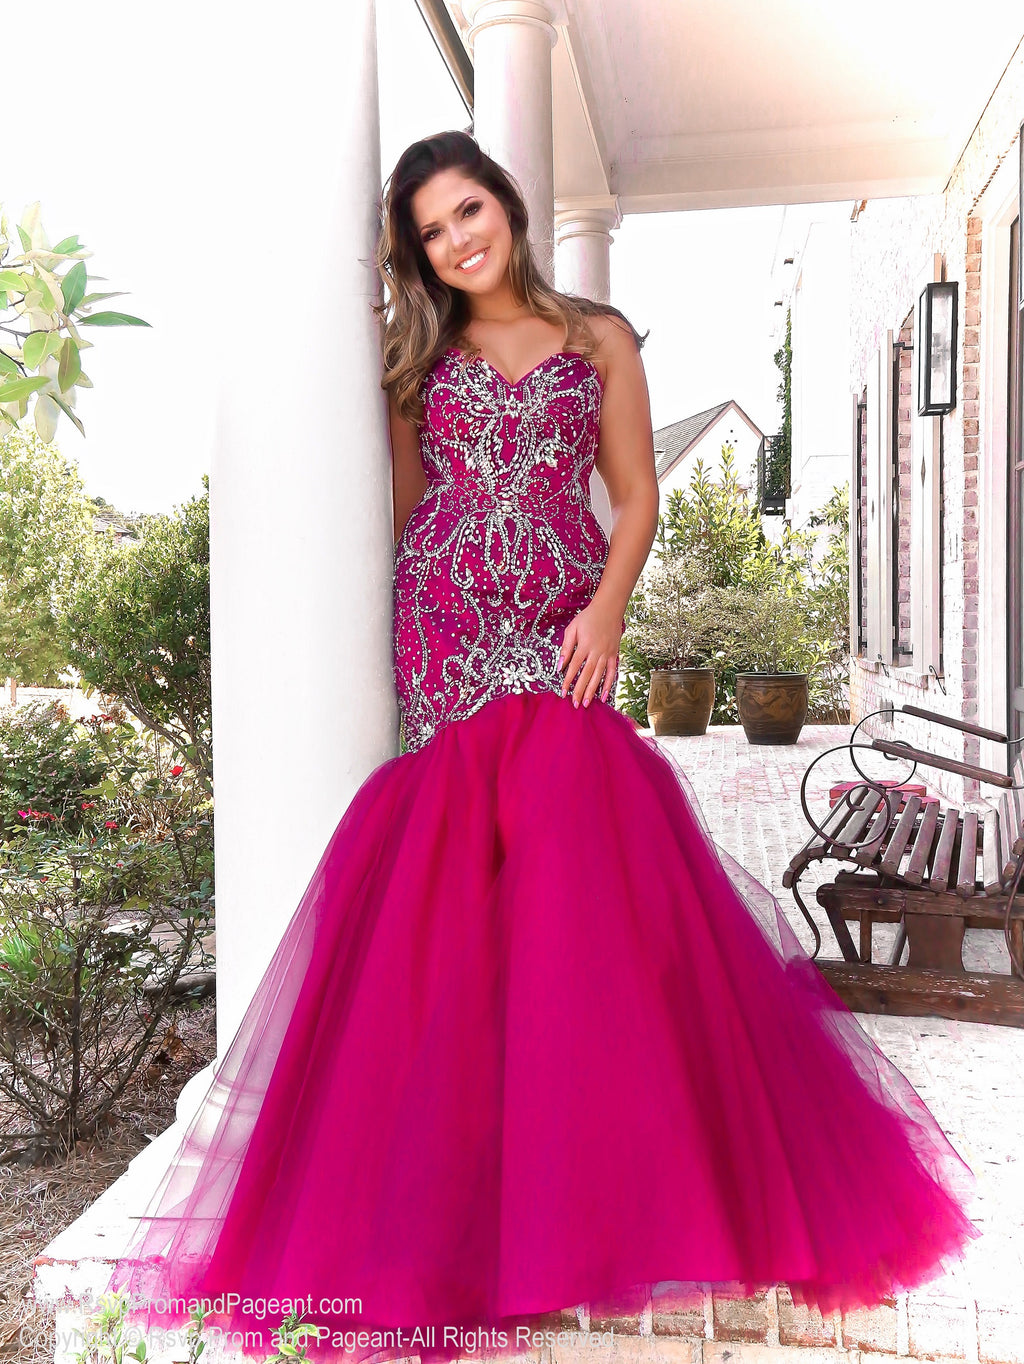 Model in glamorous fully beaded strapless mermaid dress! And it's at Rsvp Prom and Pageant, your source for the HOTTEST Prom and Pageant Dresses and exclusive evening gowns and located in Atlanta, Georgia!